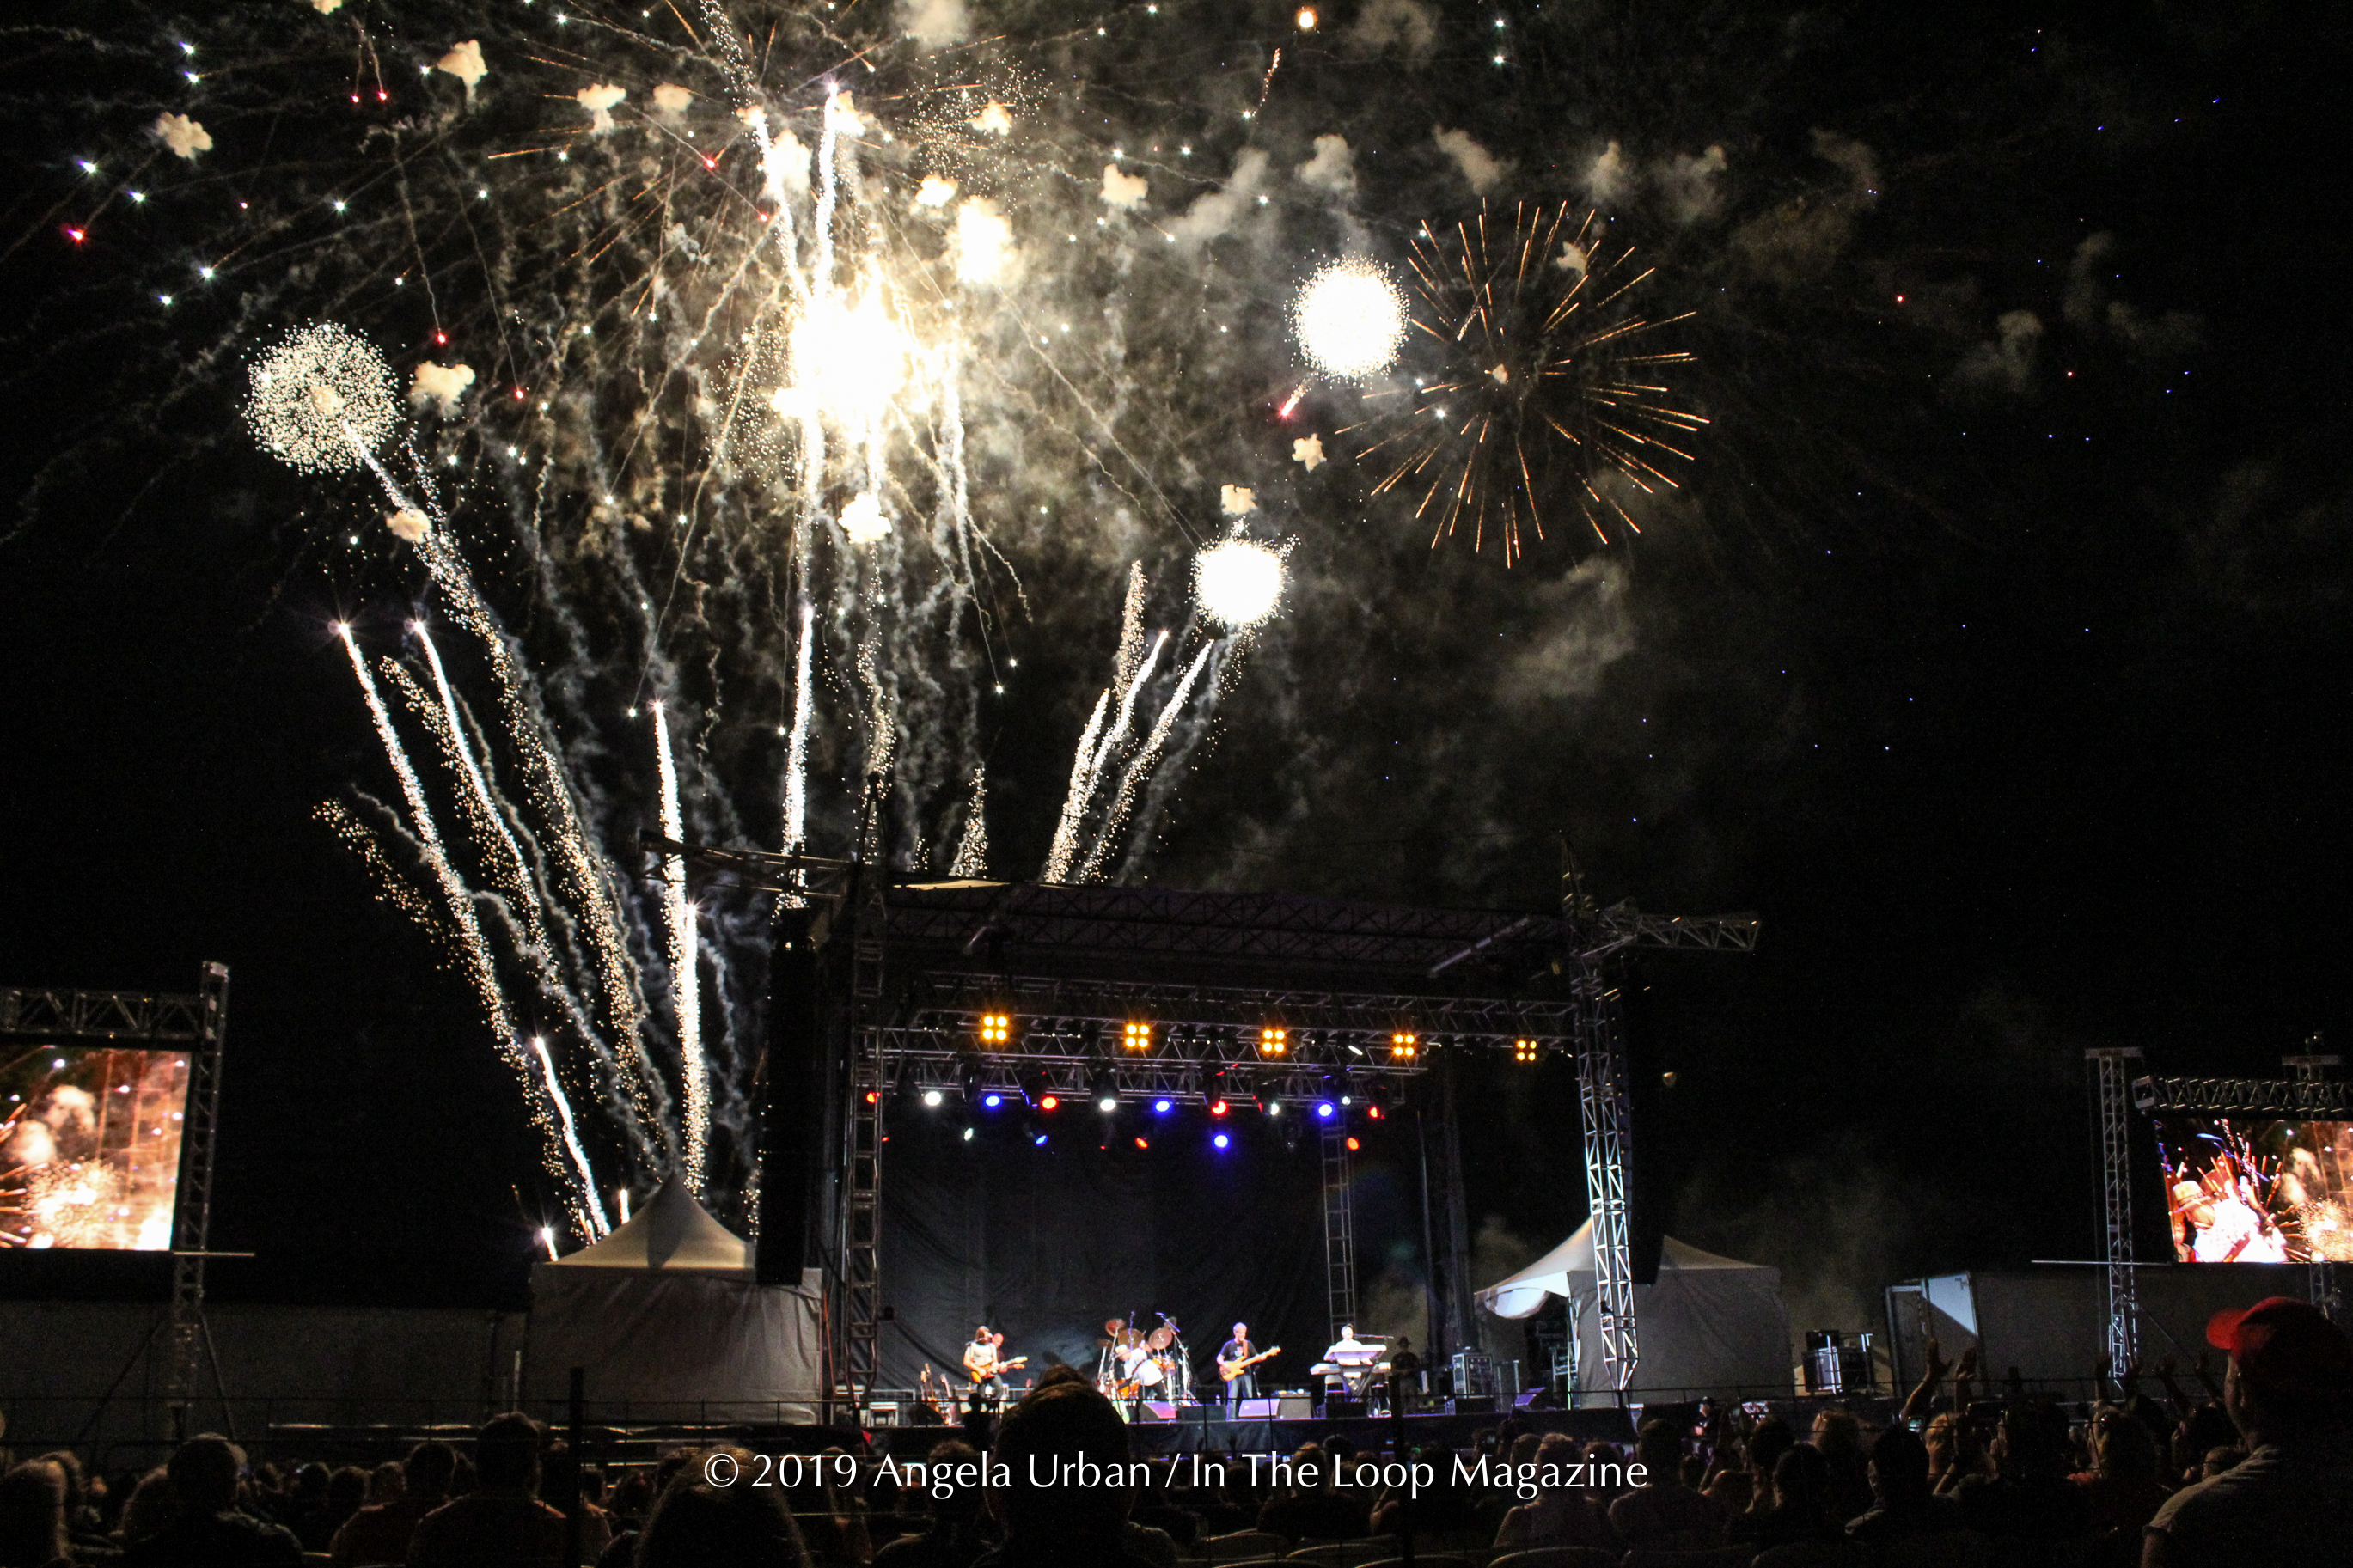 ITLM OTRS Presents: Fireworks and 90's Country Day Featuring Sawyer Brown and Diamond Rio At The 138th Porter County Fair